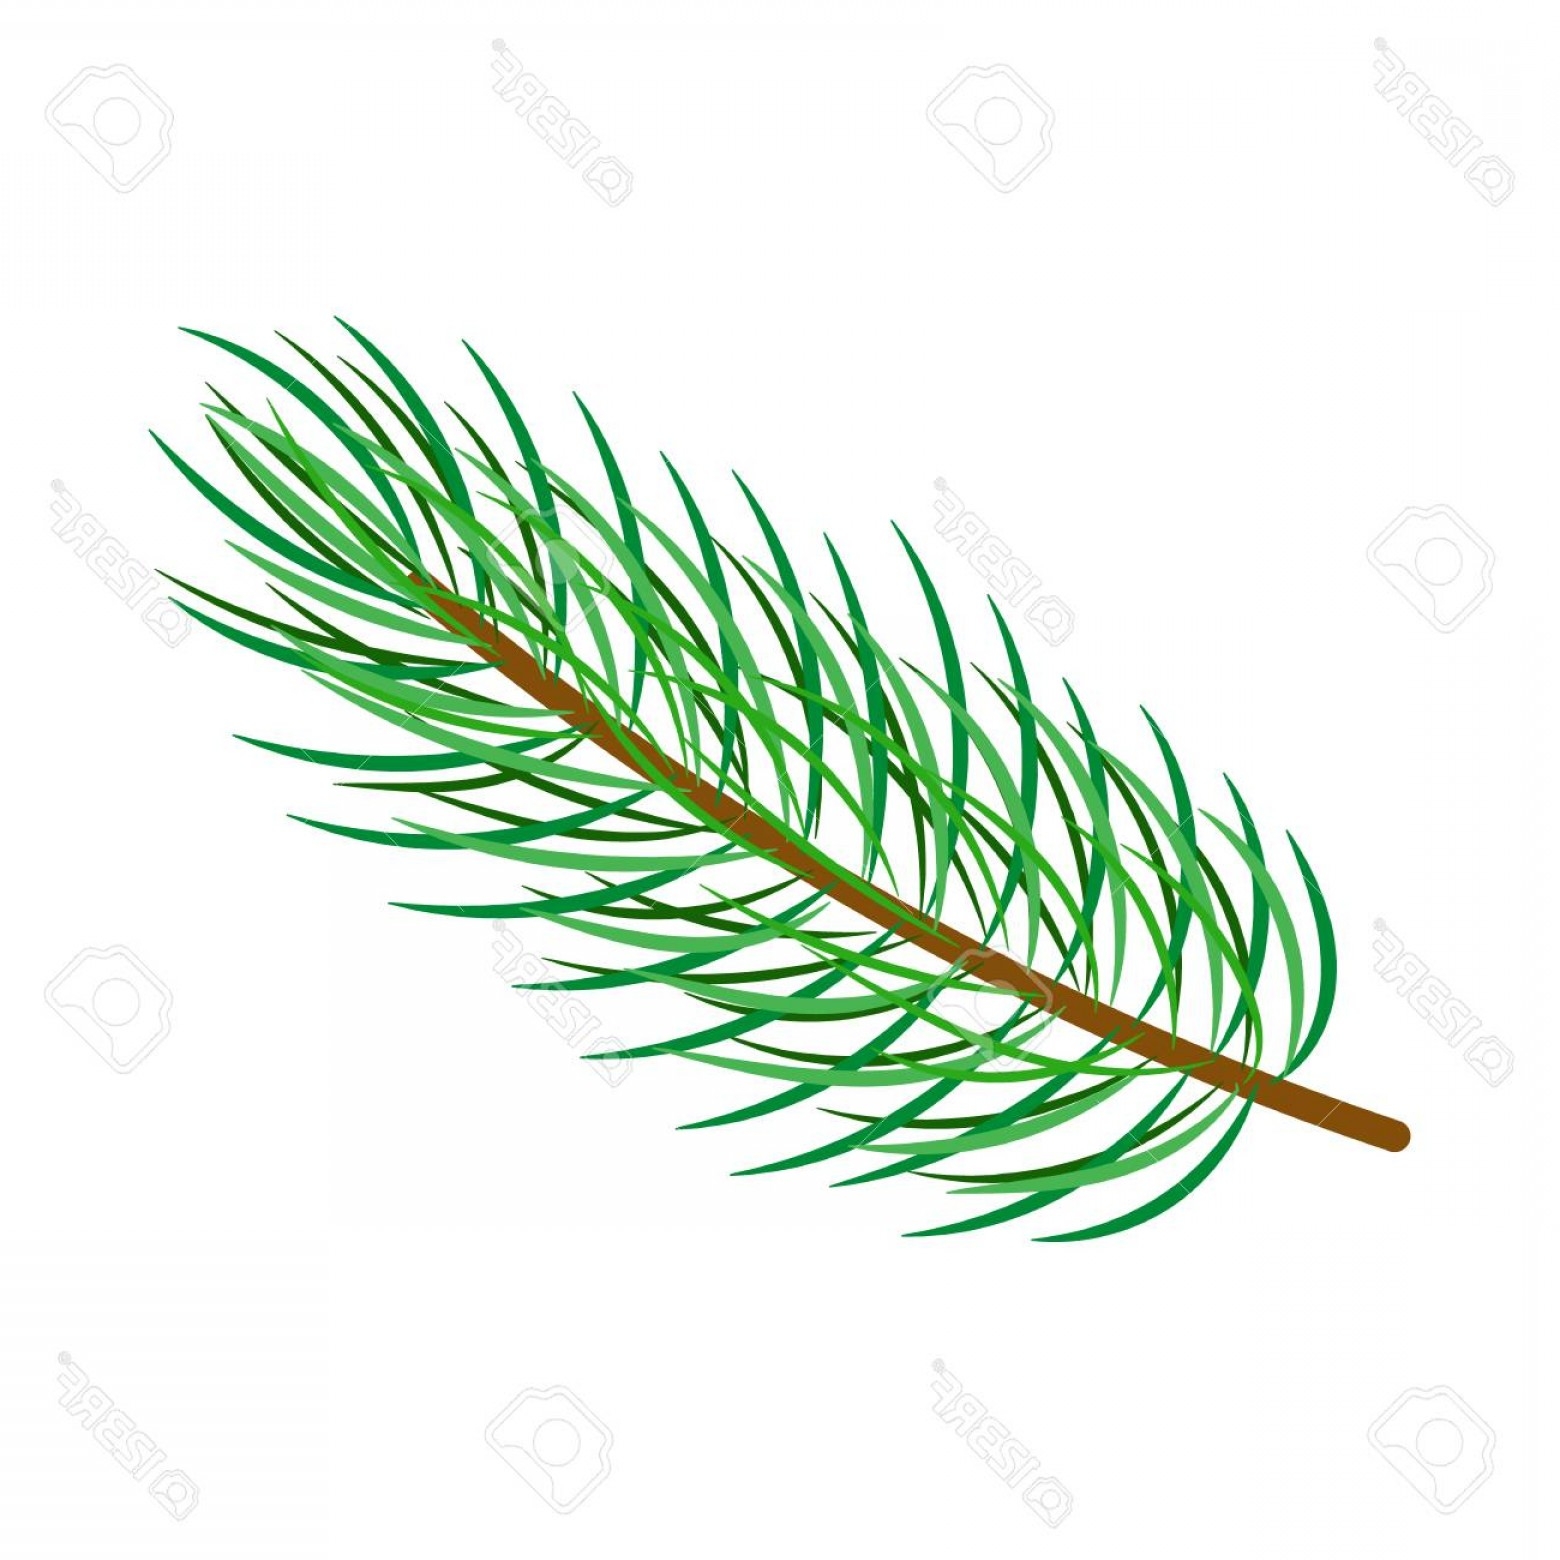 Pine Leaves Vector: Photostock Vector Vector Flat Cartoon Style Spruce Pine Fir Tree Leaves Needles On Branch Isolated Illustration On A W